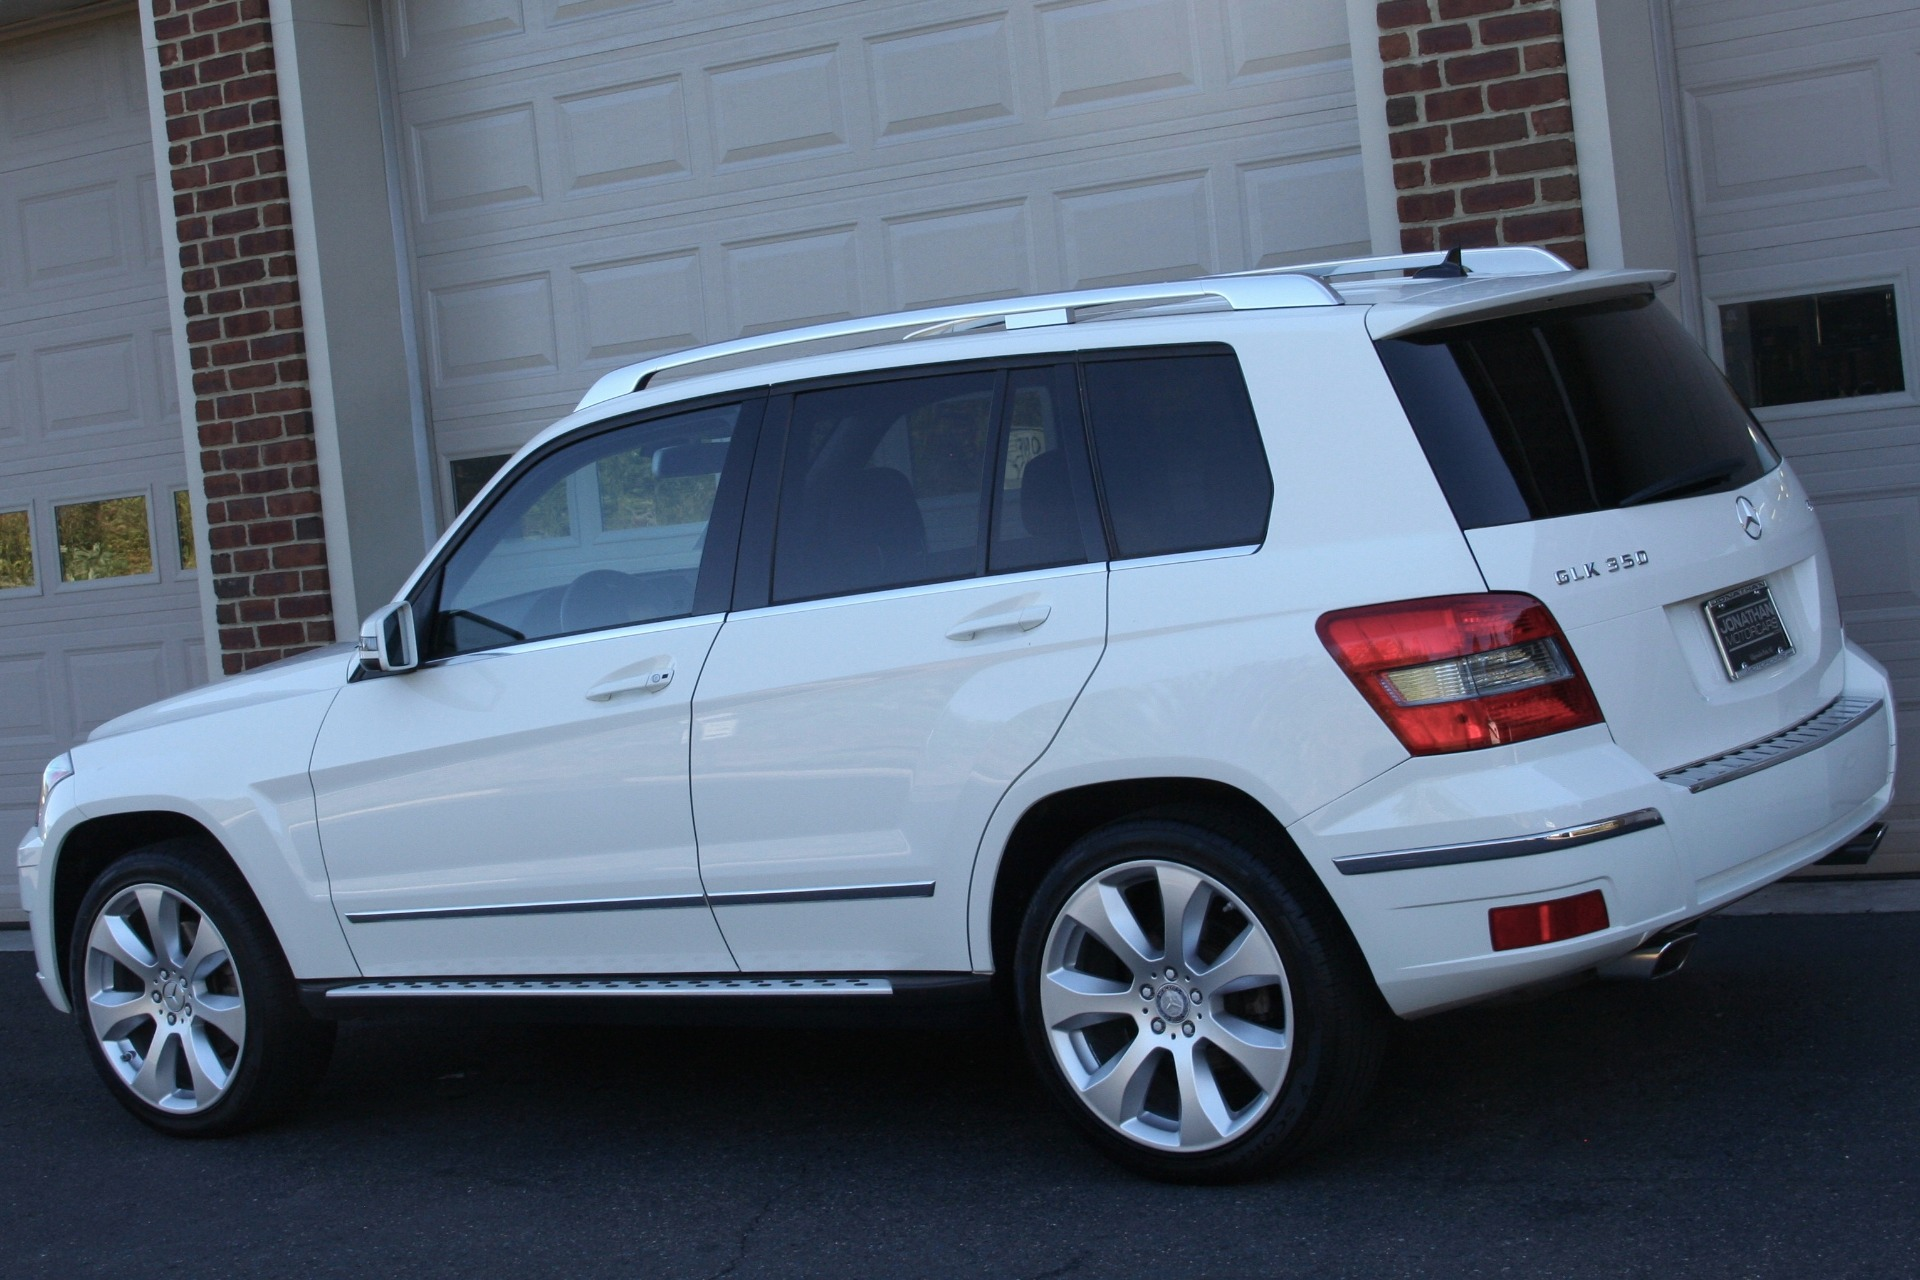 2010 mercedes benz glk glk 350 4matic stock 338575 for for 2010 mercedes benz glk350 for sale